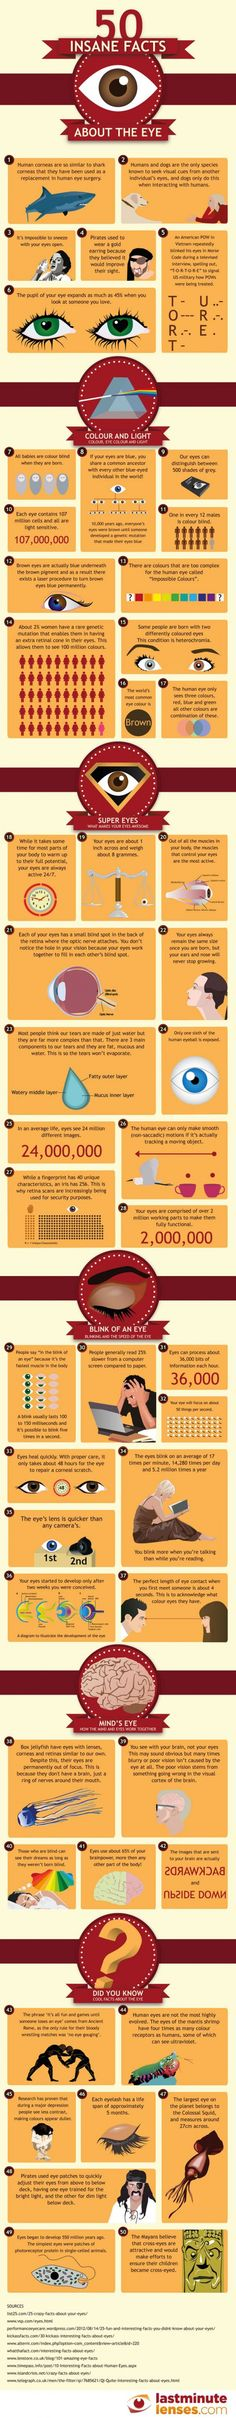 50 Insane And Amazing Facts About The Human Eye